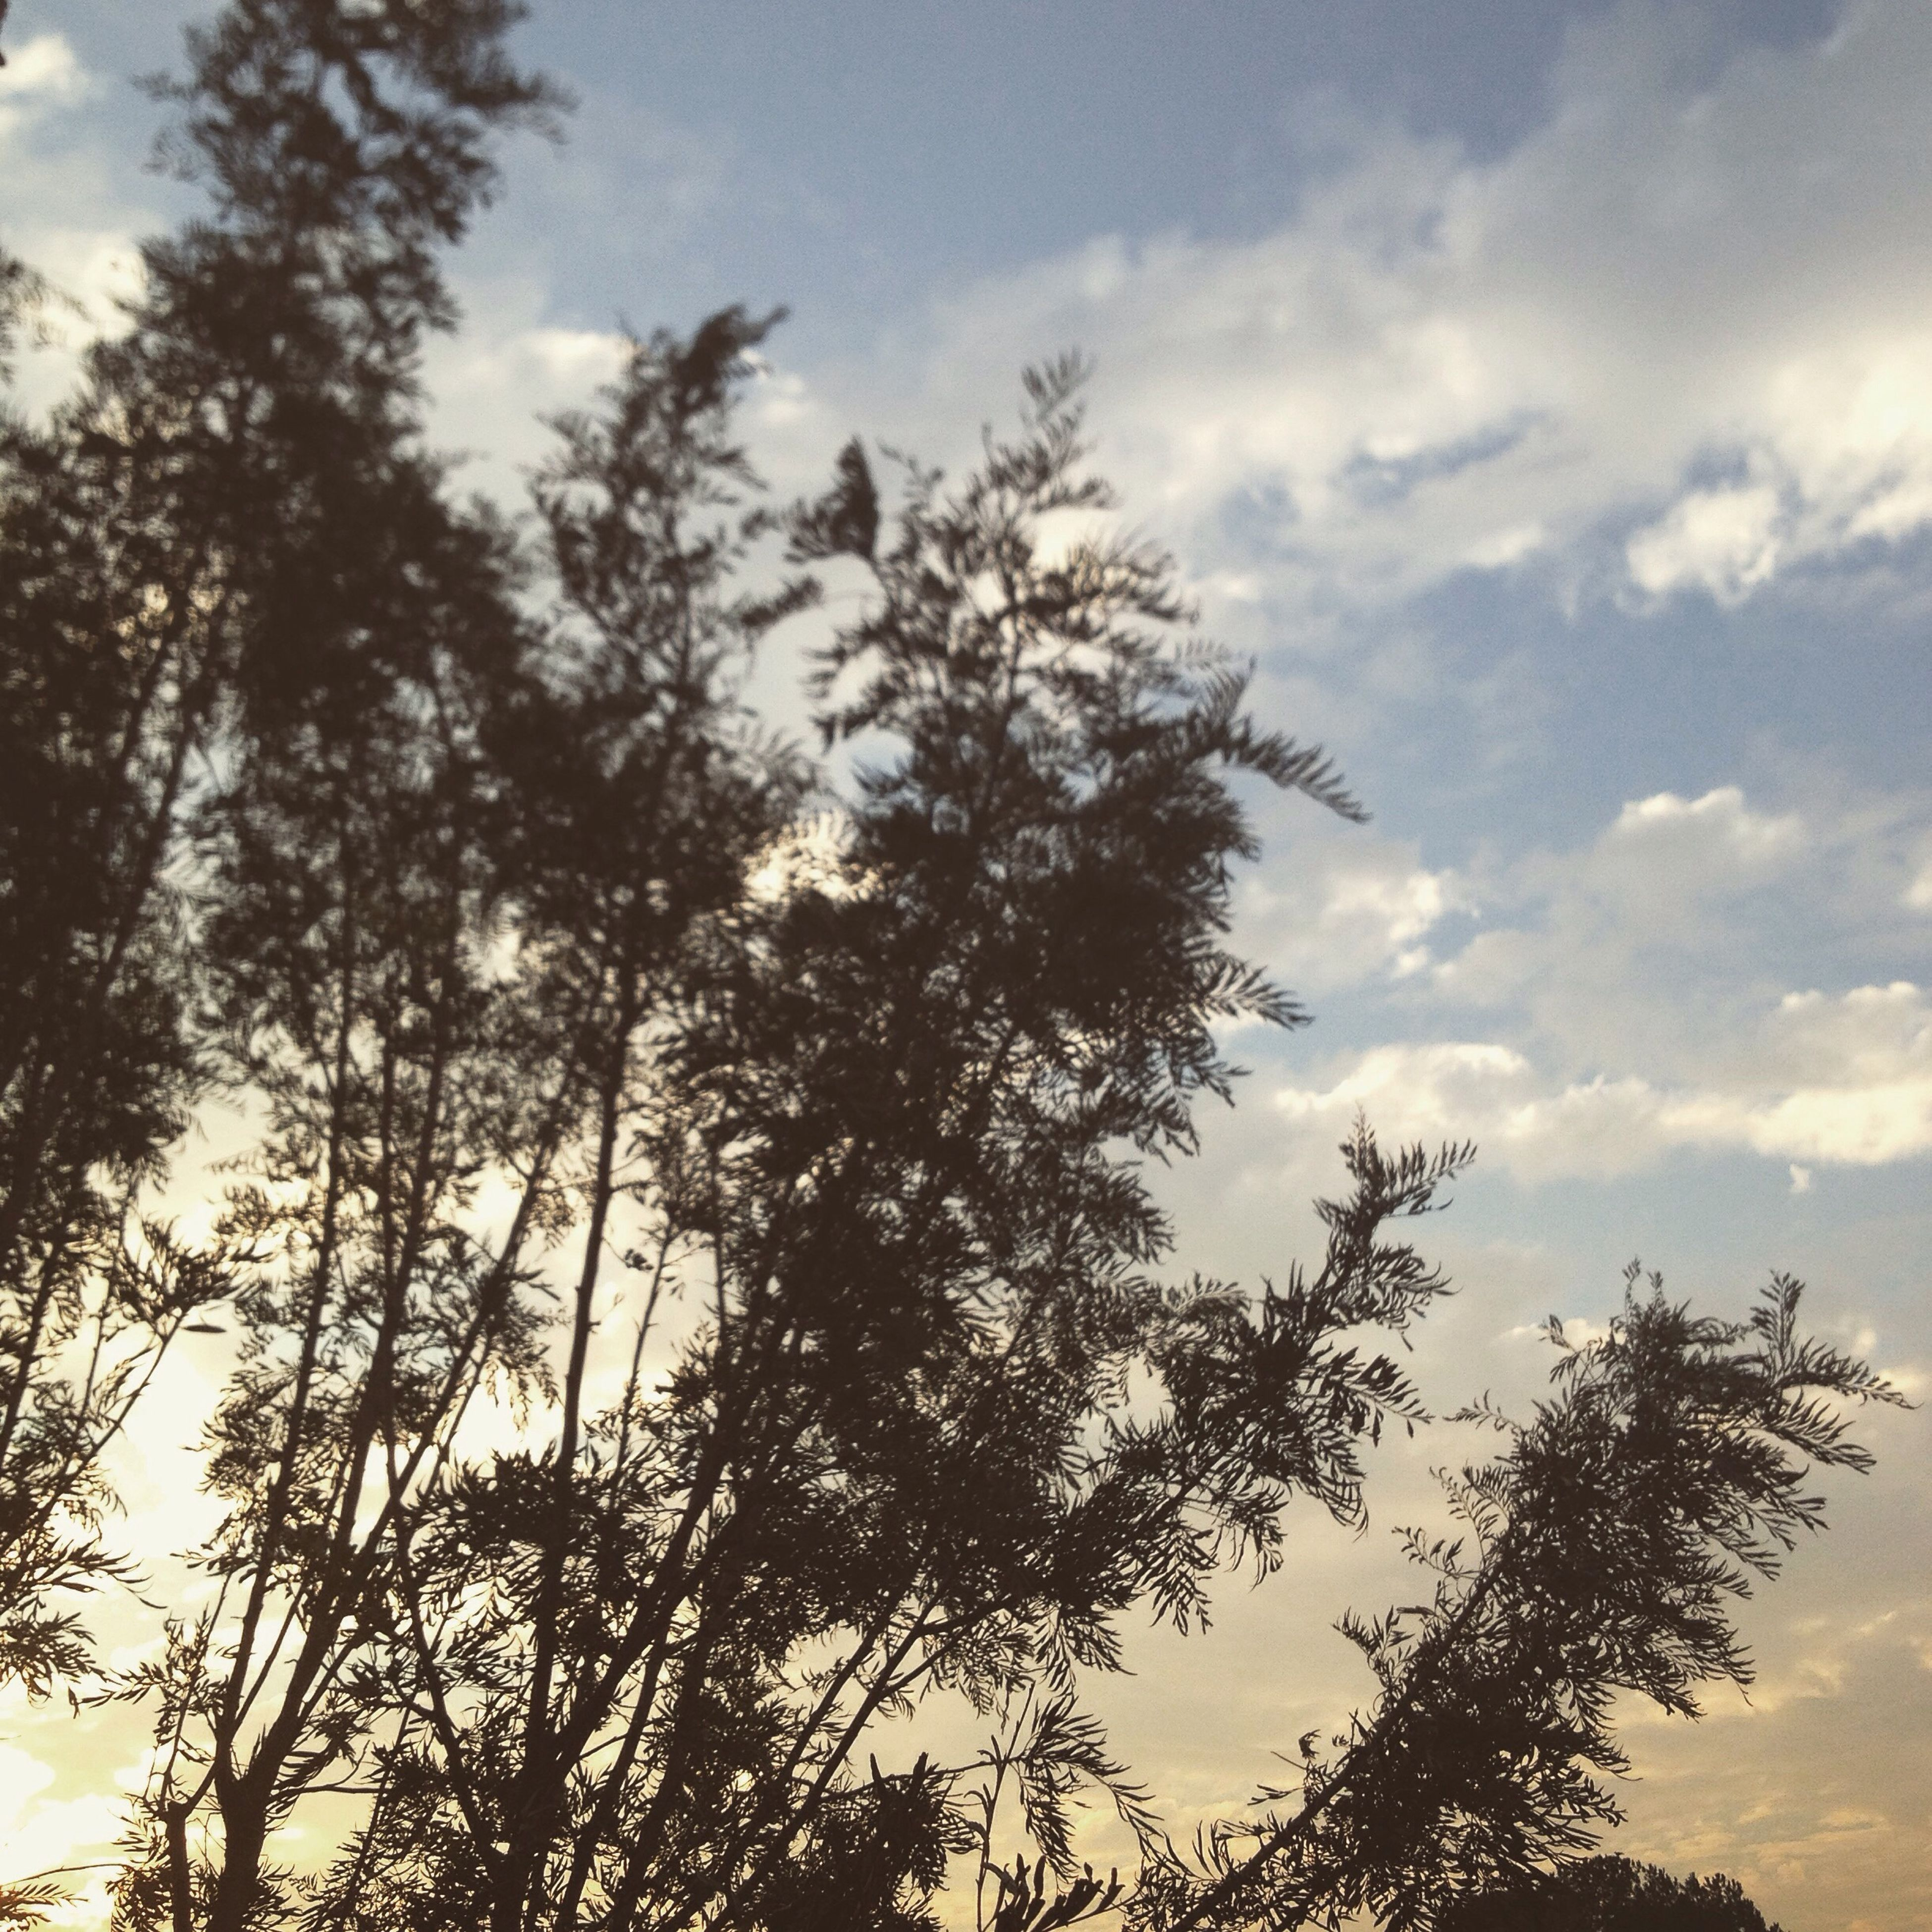 tree, low angle view, sky, silhouette, tranquility, cloud - sky, branch, growth, beauty in nature, nature, tranquil scene, scenics, cloud, cloudy, tree trunk, bare tree, sunset, outdoors, no people, idyllic